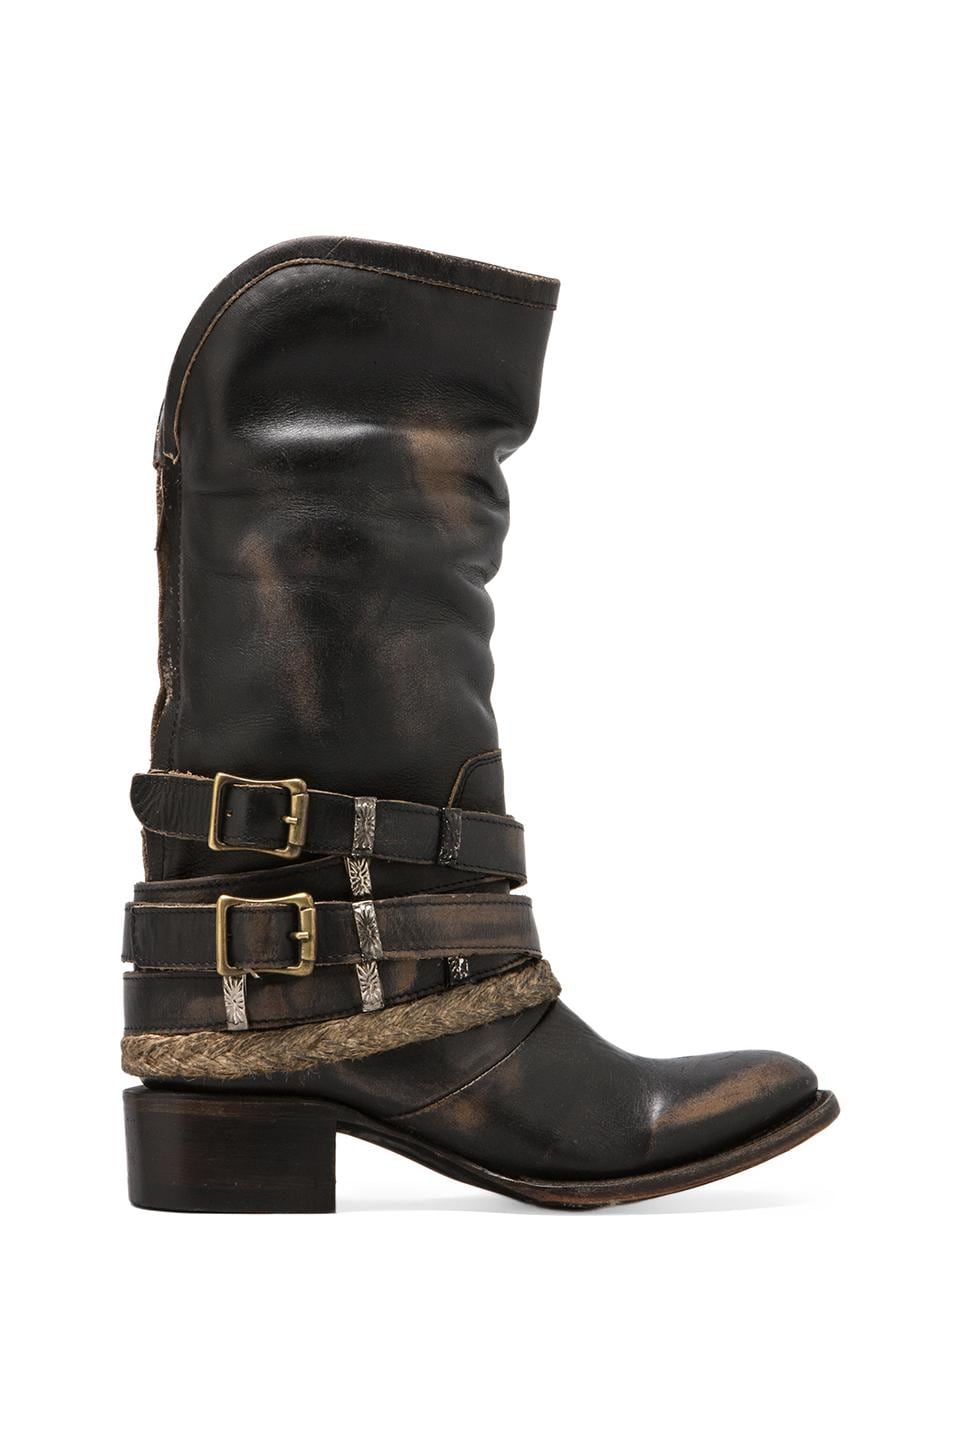 Freebird by Steven Drover Boot in Black